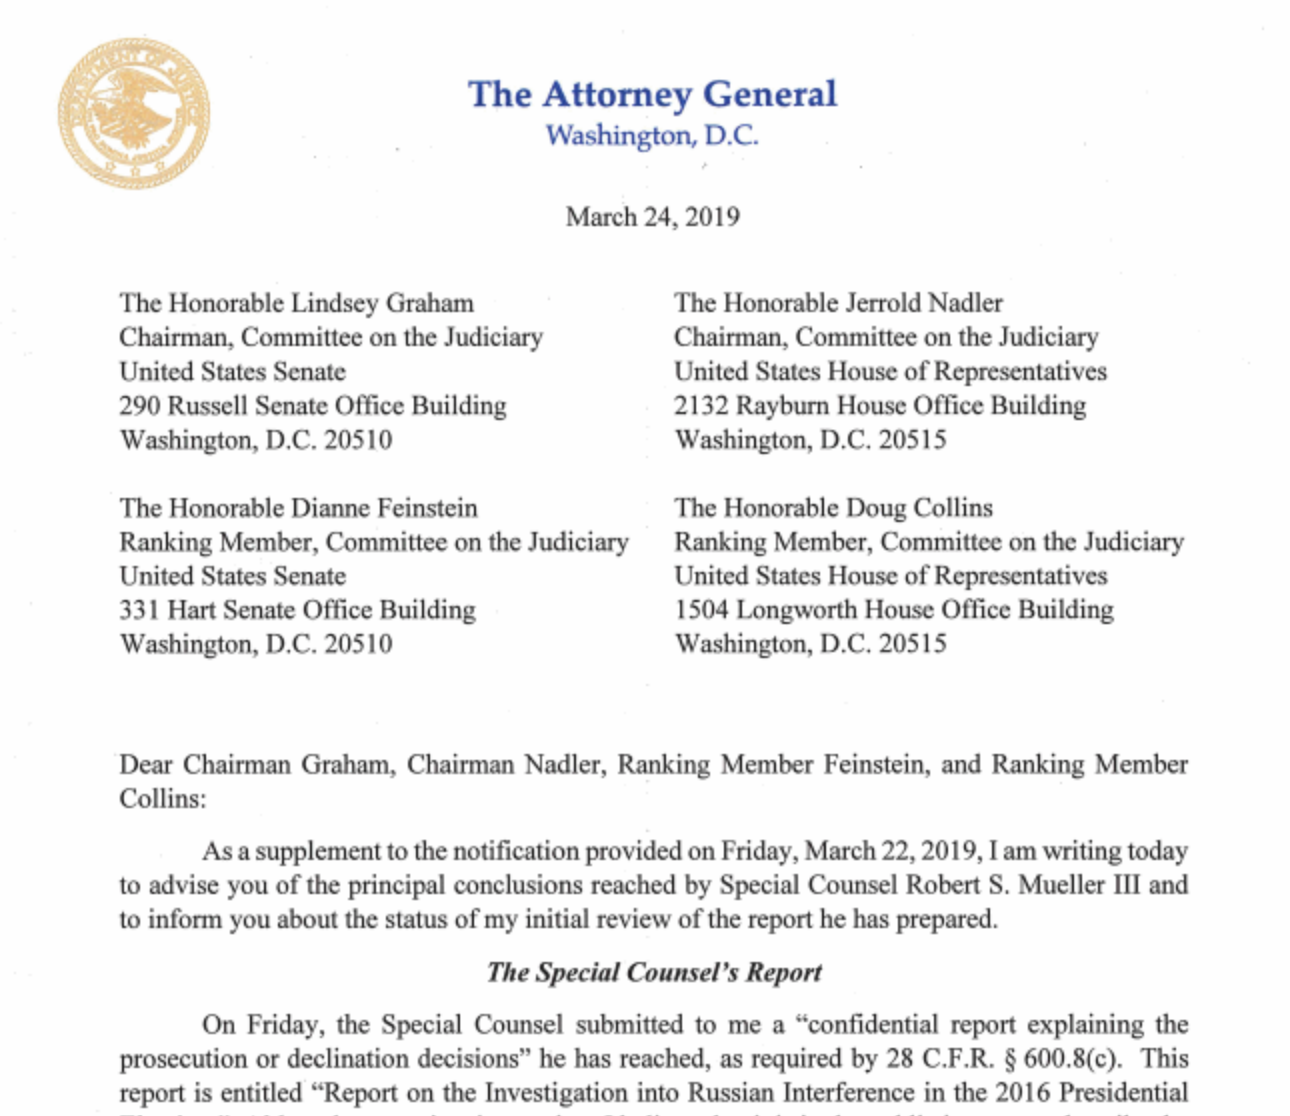 The letter submitted by Attorney General William Barr to Congress. The letter was later disclosed to the public and declares that the special counsel did not find any knowing coordination between the Trump campaign and Russia during the 2016 election.